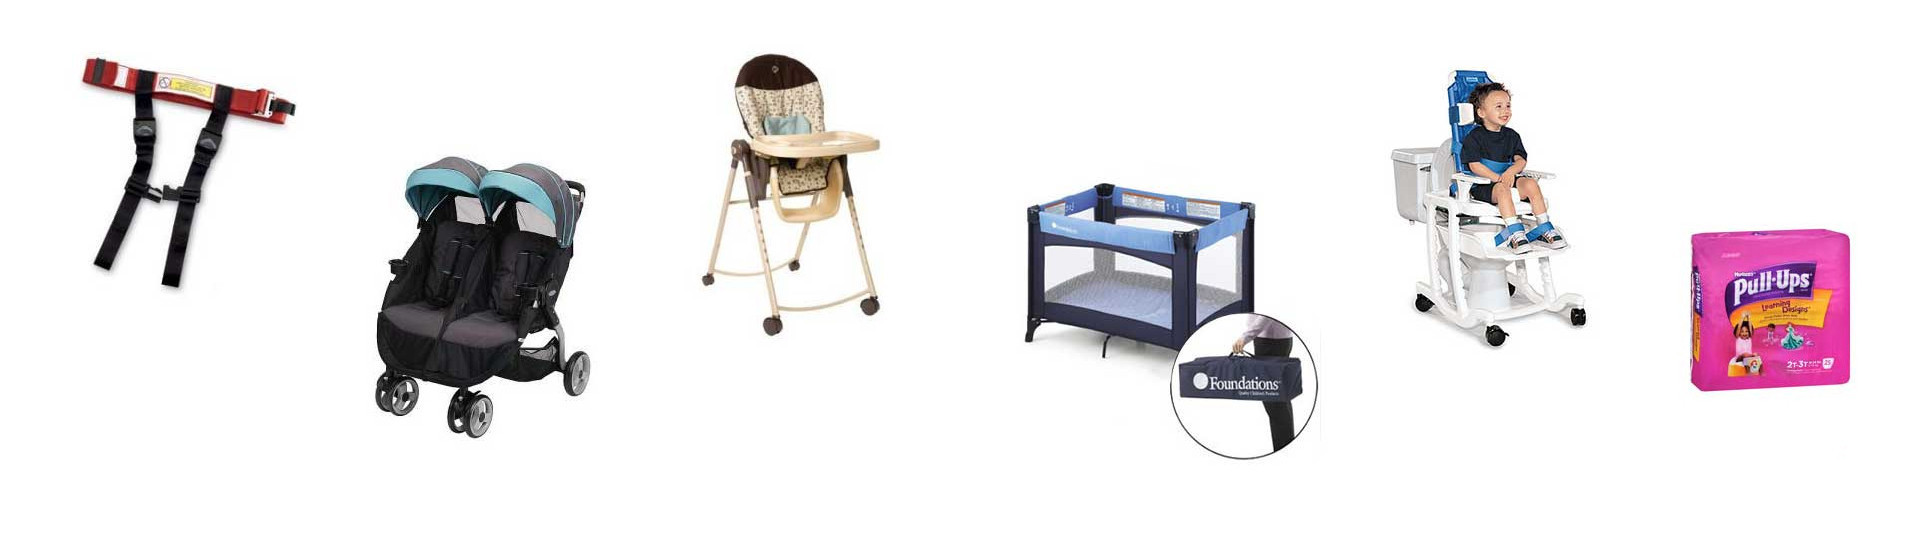 Medical equipment rentals in Central Florida